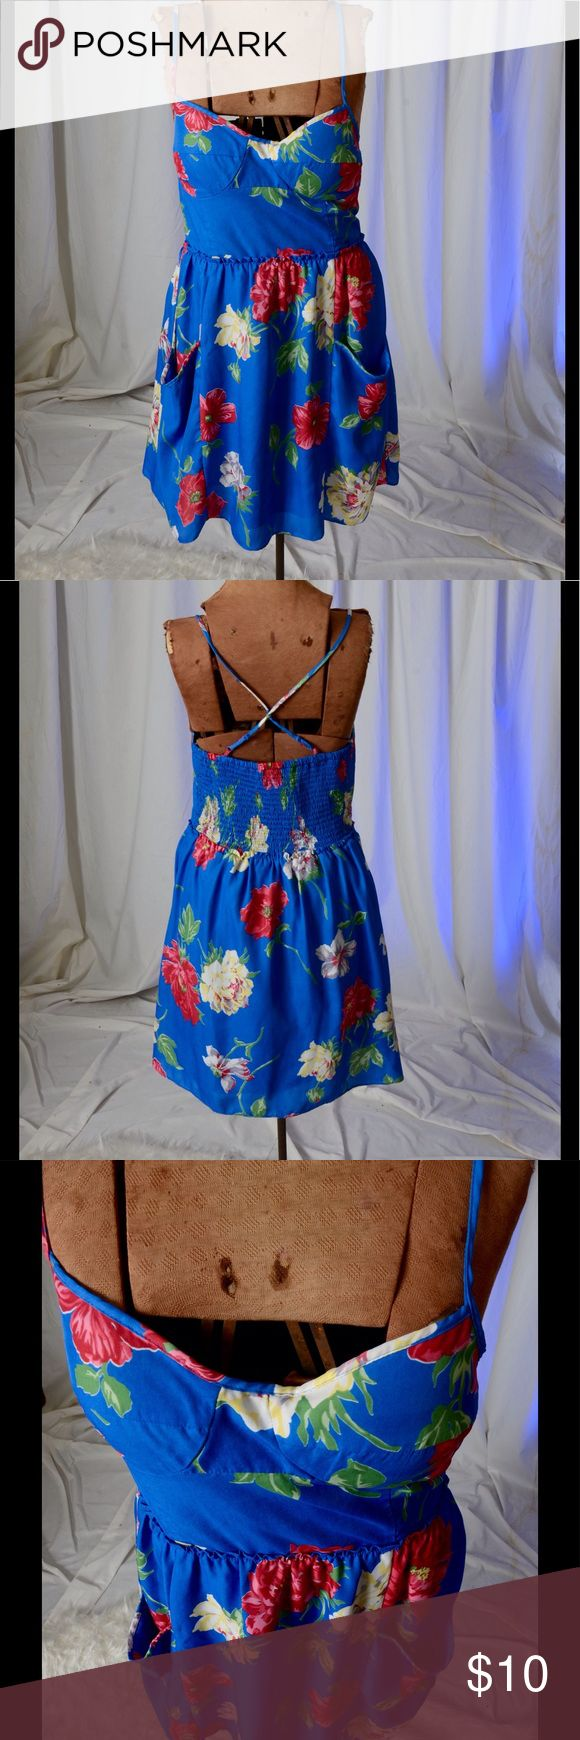 American Eagle blue dress with flowers American Eagle dress with flowers.  Dress has a large elastic panel in the back and criss-cross straps.  Dress has side pockets and is fully lined.  Cute! American Eagle Outfitters Dresses